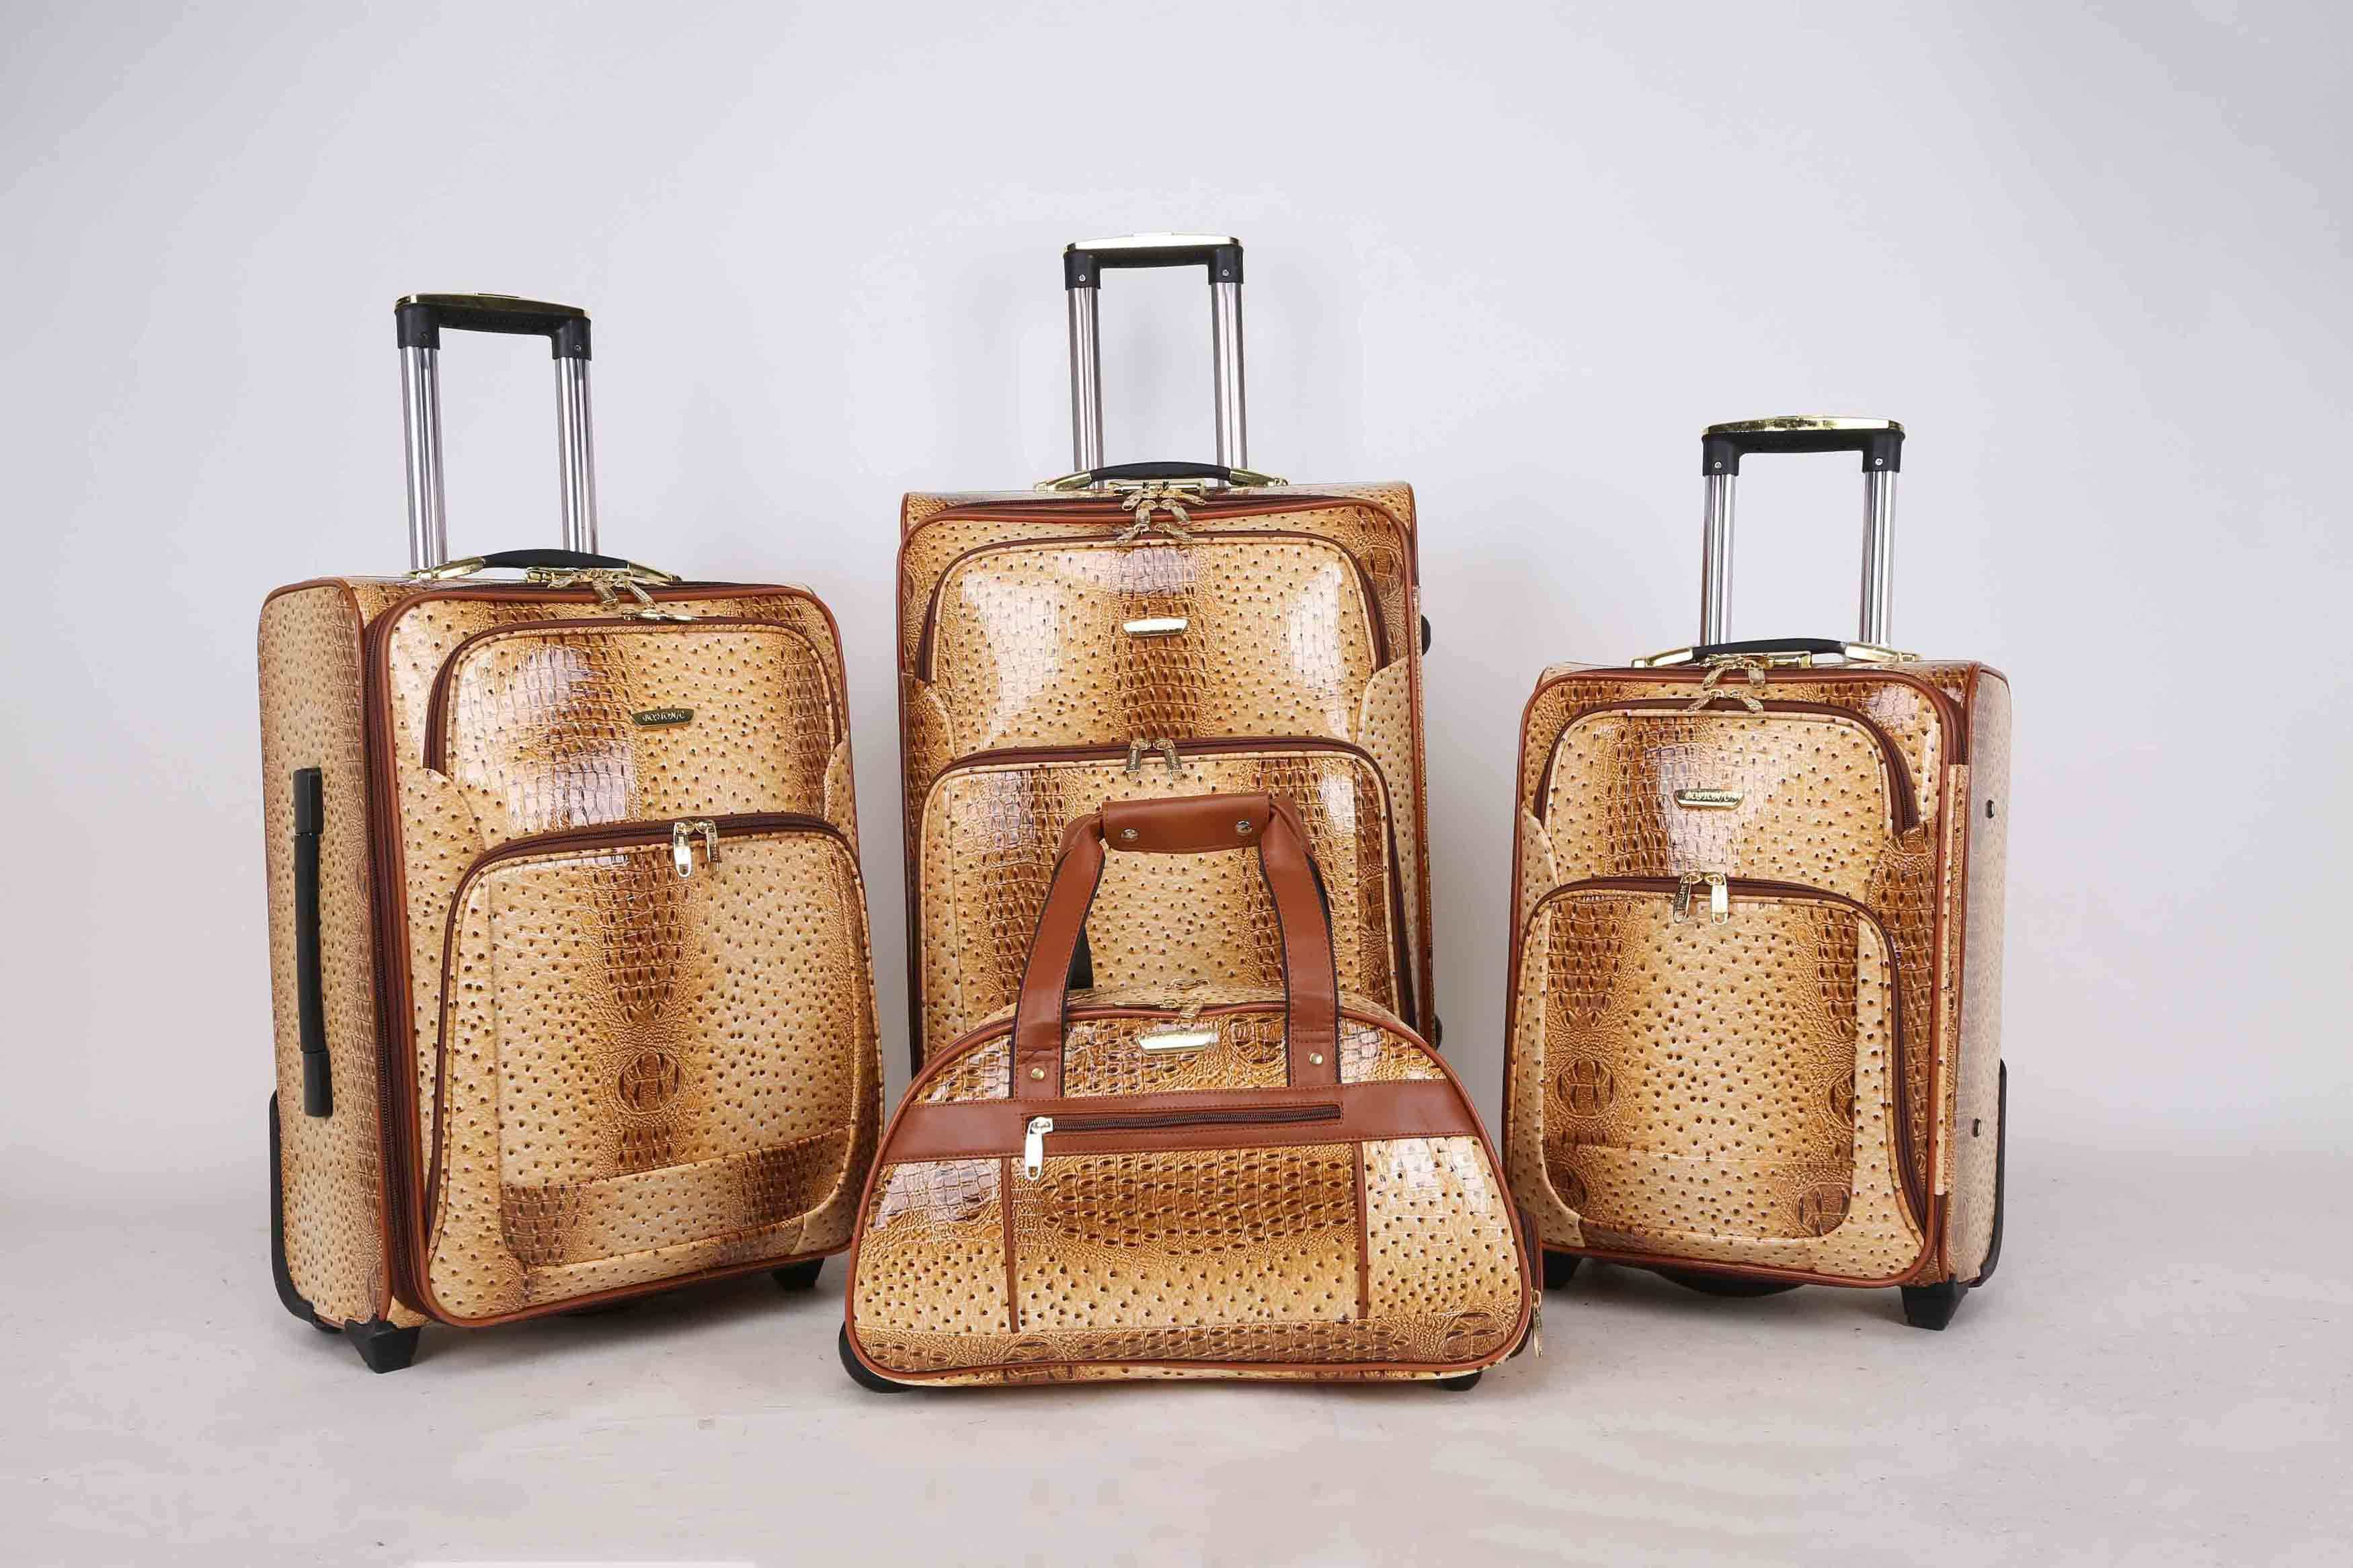 Africa Market Hotsale Luggage Trolley Case Jb010